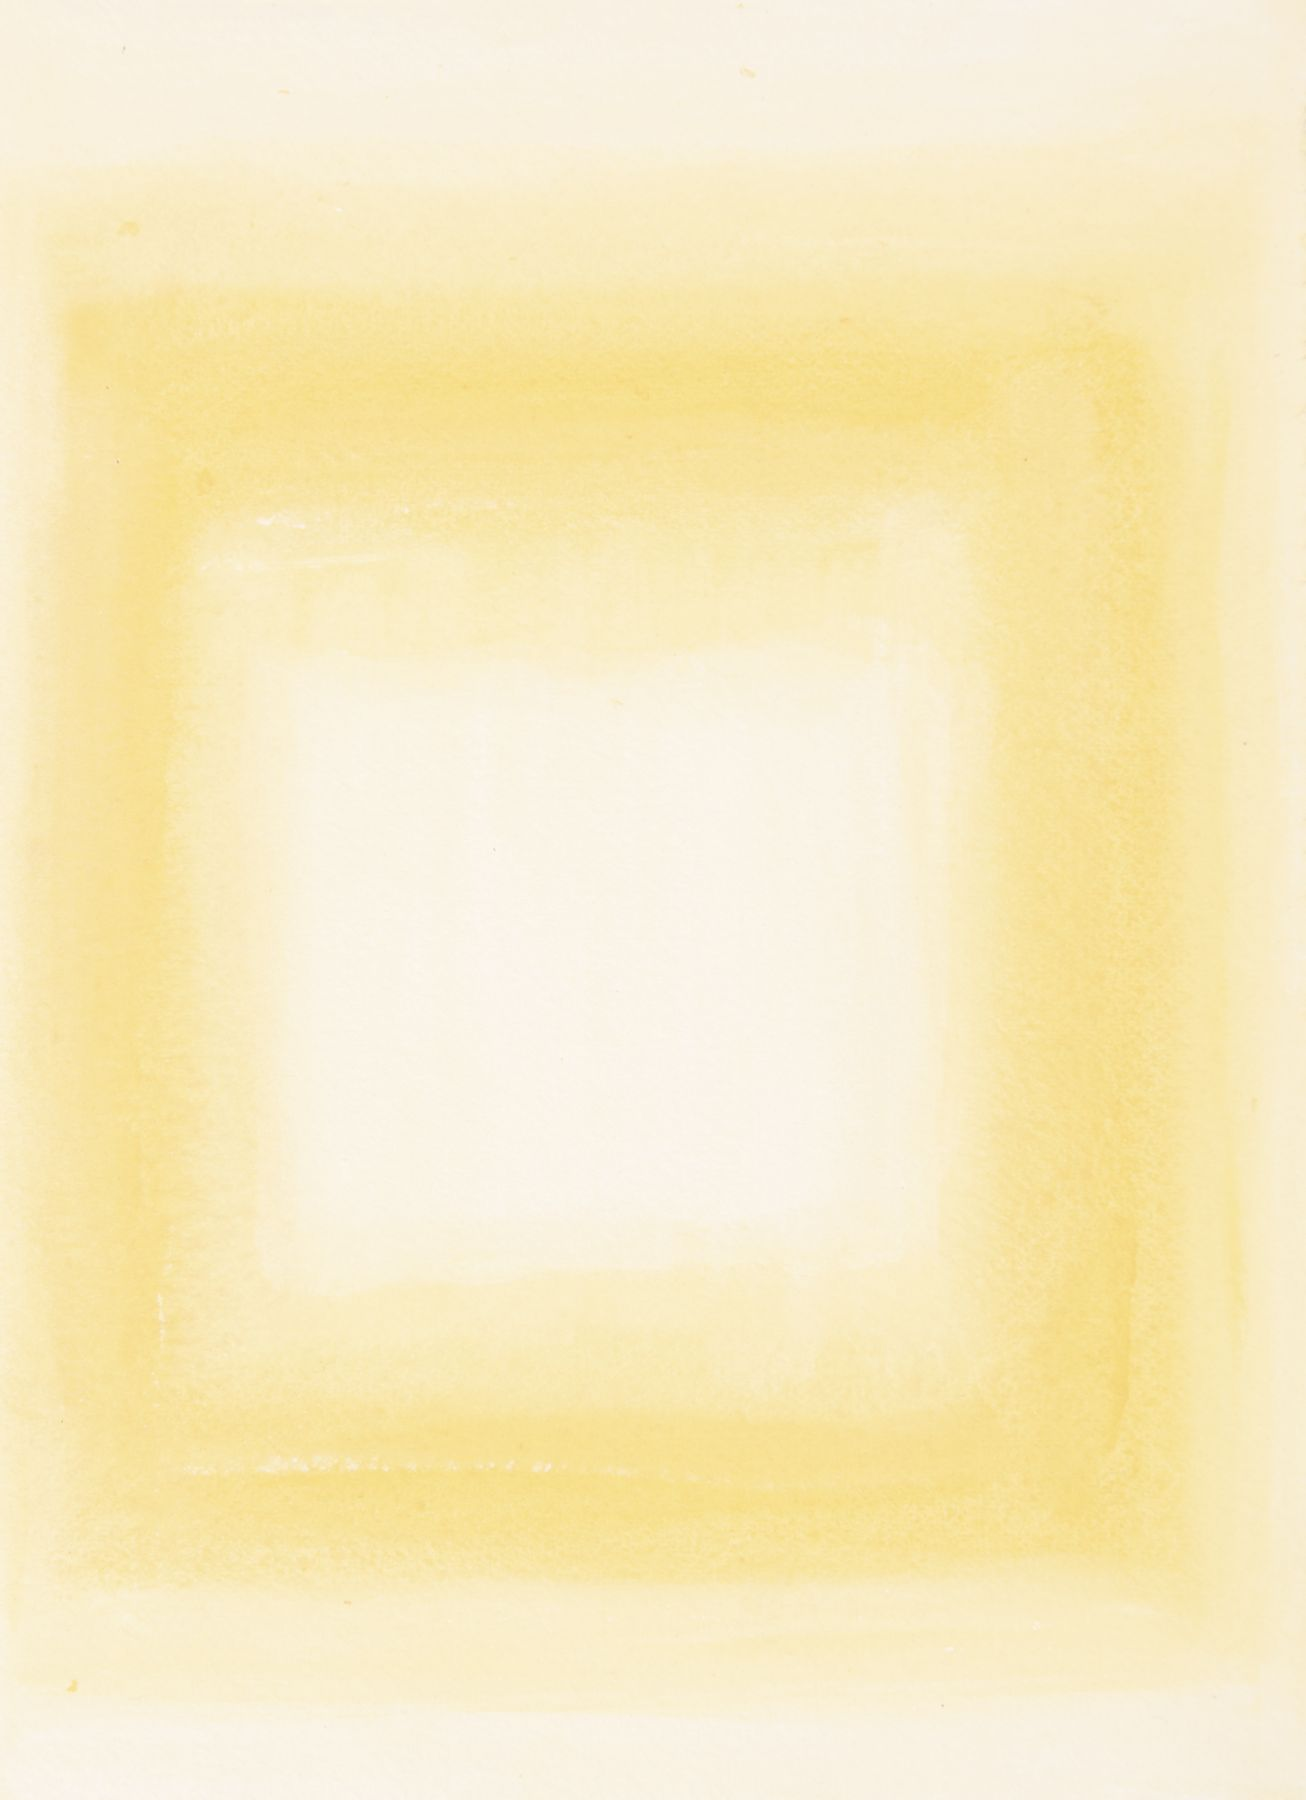 Felrath Hines, Untitled,  Watercolor on paper,  7.75 x 6 inches, Unsigned. Soft pastel yellow background with outlined yellow rectangle in the center of the frame. Felrath Hines worked to create universal visual idioms from a place of complex personal experience. His figurative and cubist-style artwork morphed into soft-edged organic abstracts as he grappled with hues in his chosen oil medium.